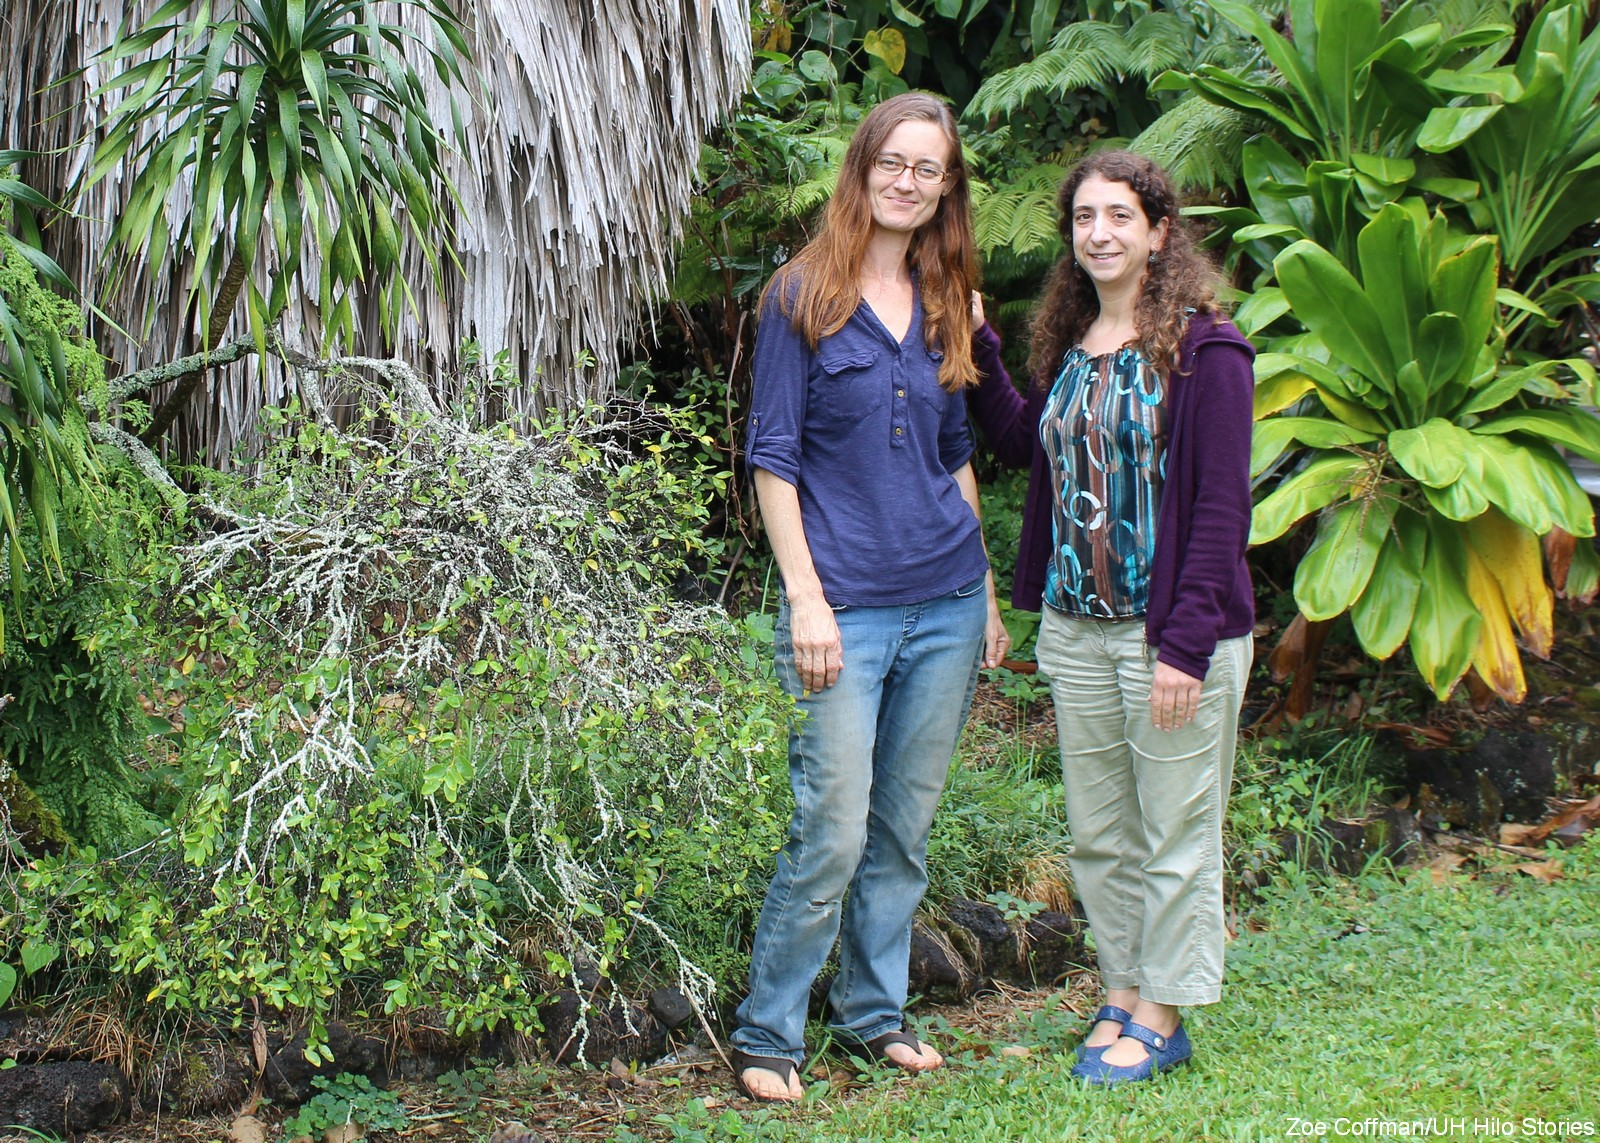 Joanna and Becky standing together in a garden on campus.